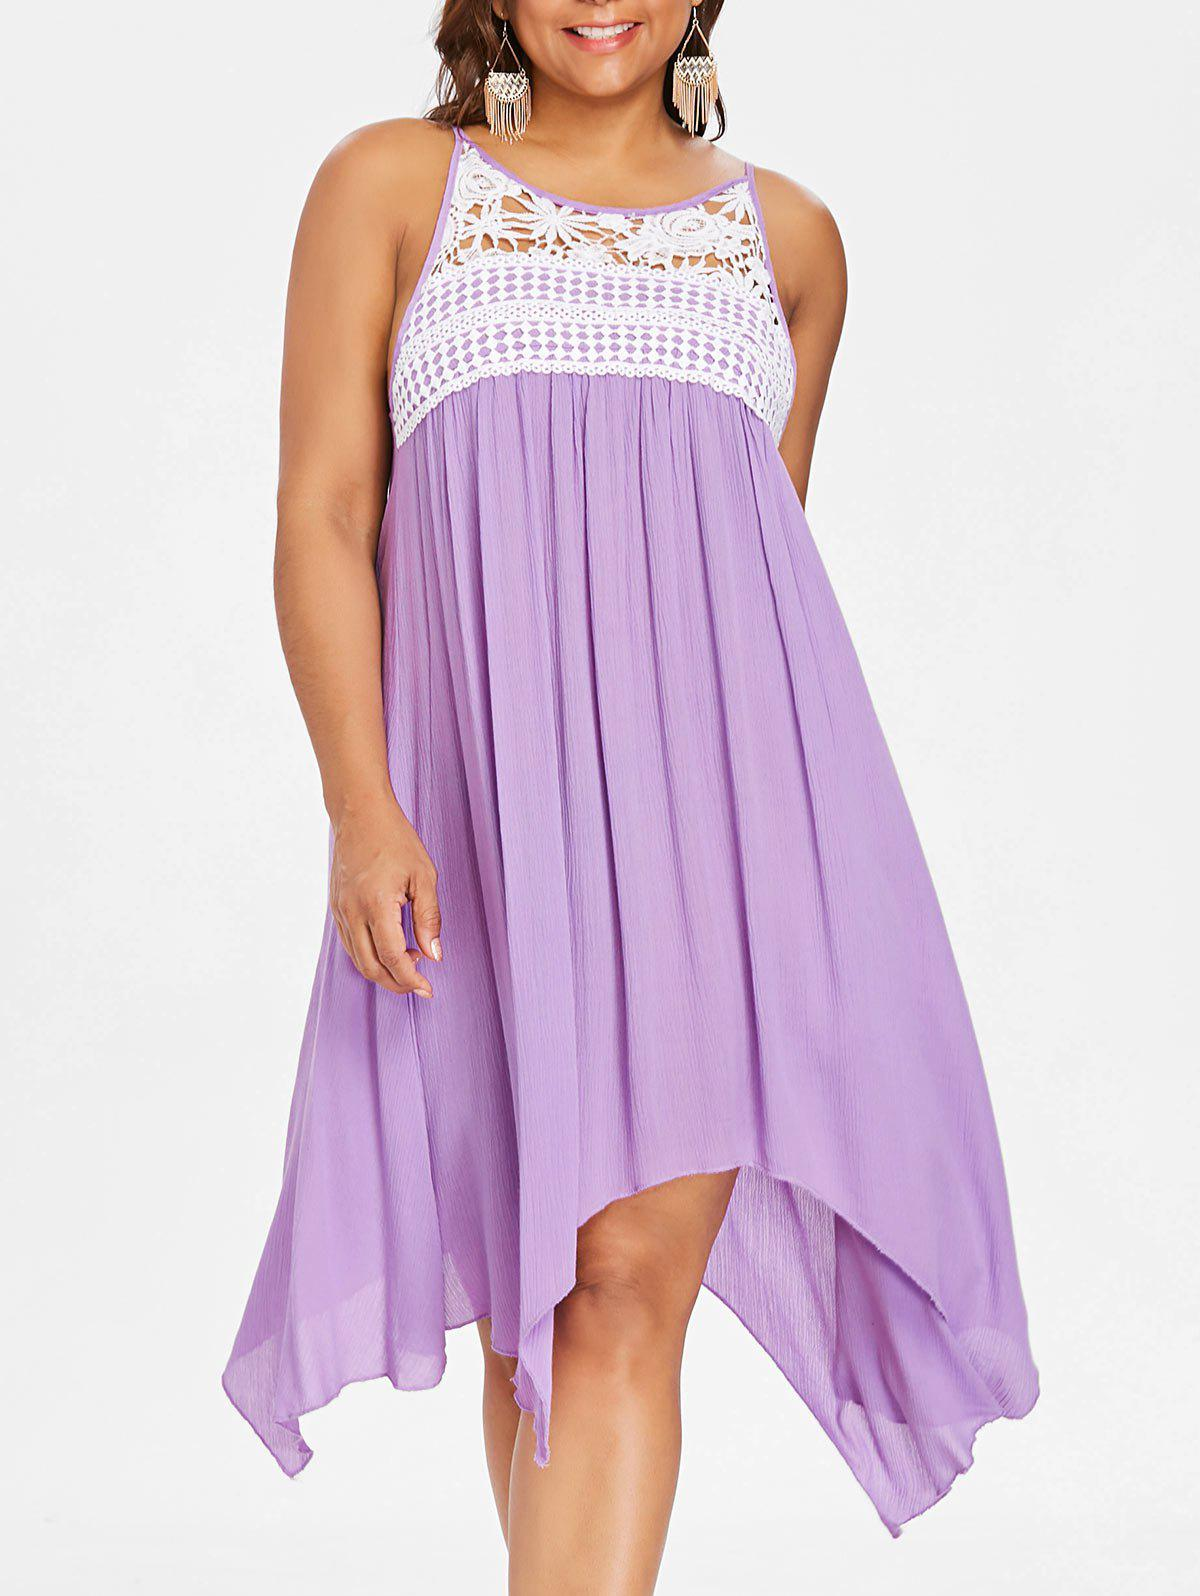 Lace Panel Plus Size Asymmetrical Slip Dress